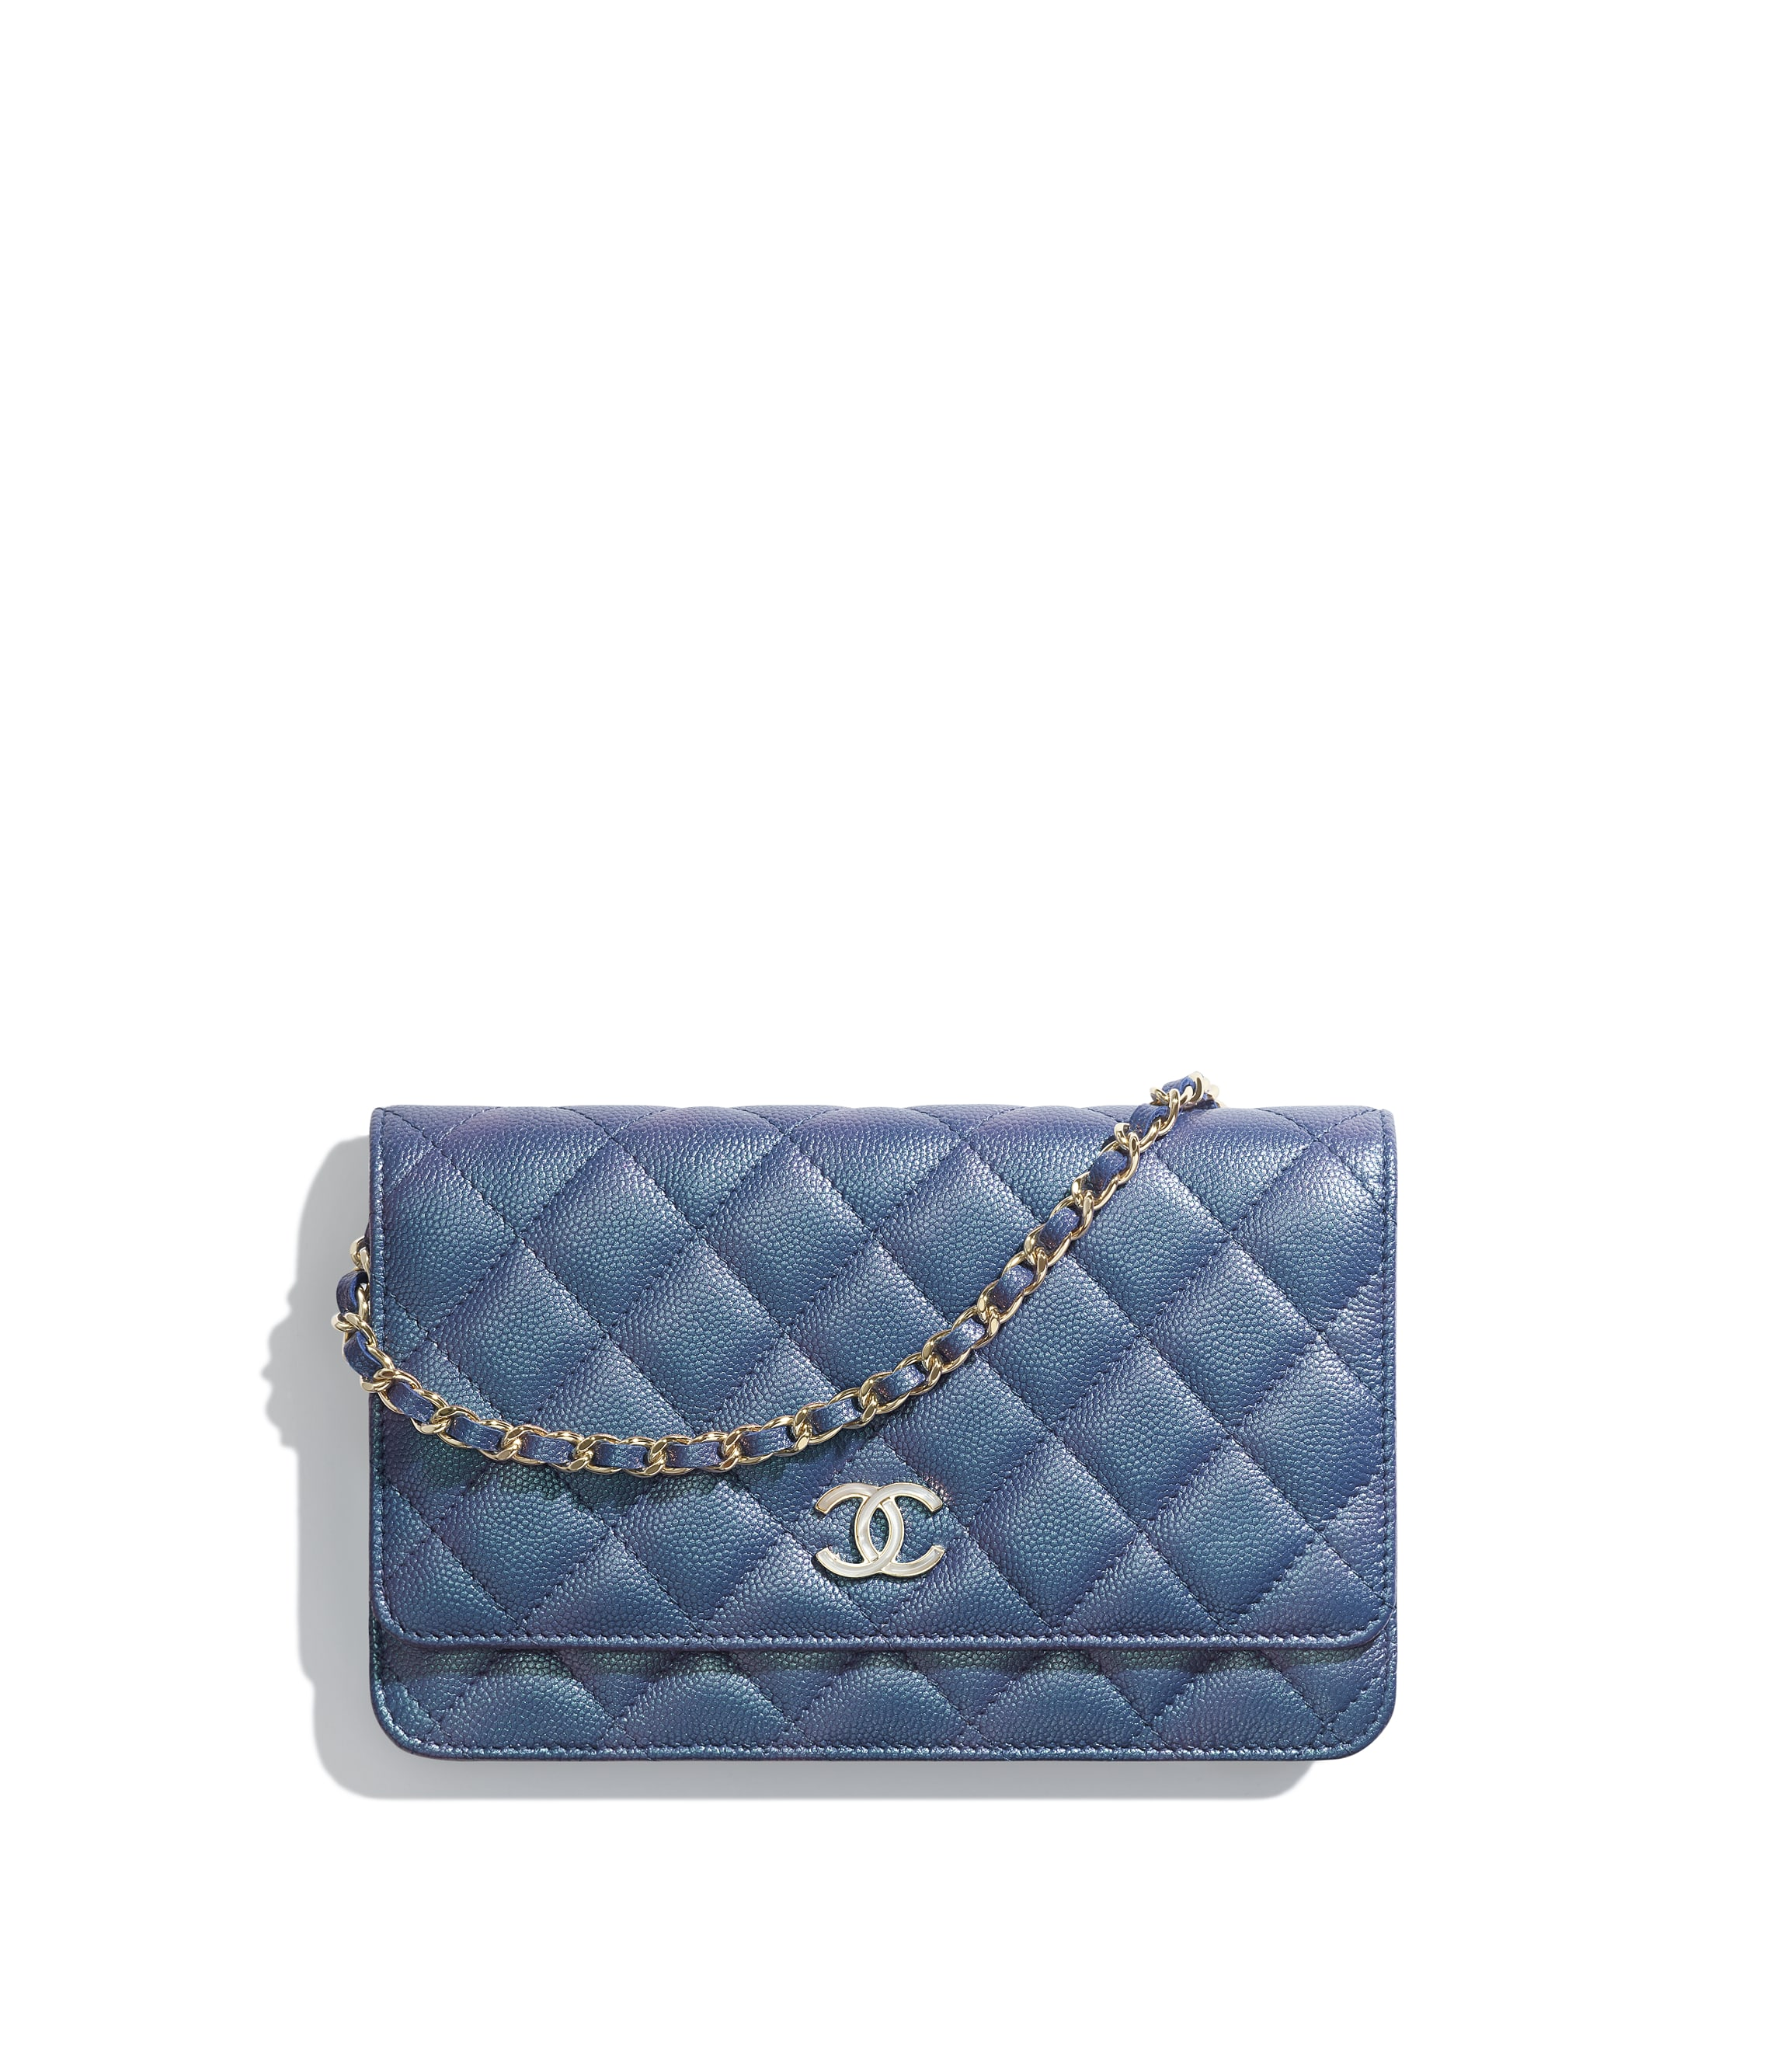 3403f30e2a00 Wallets on chain - Small Leather Goods - CHANEL